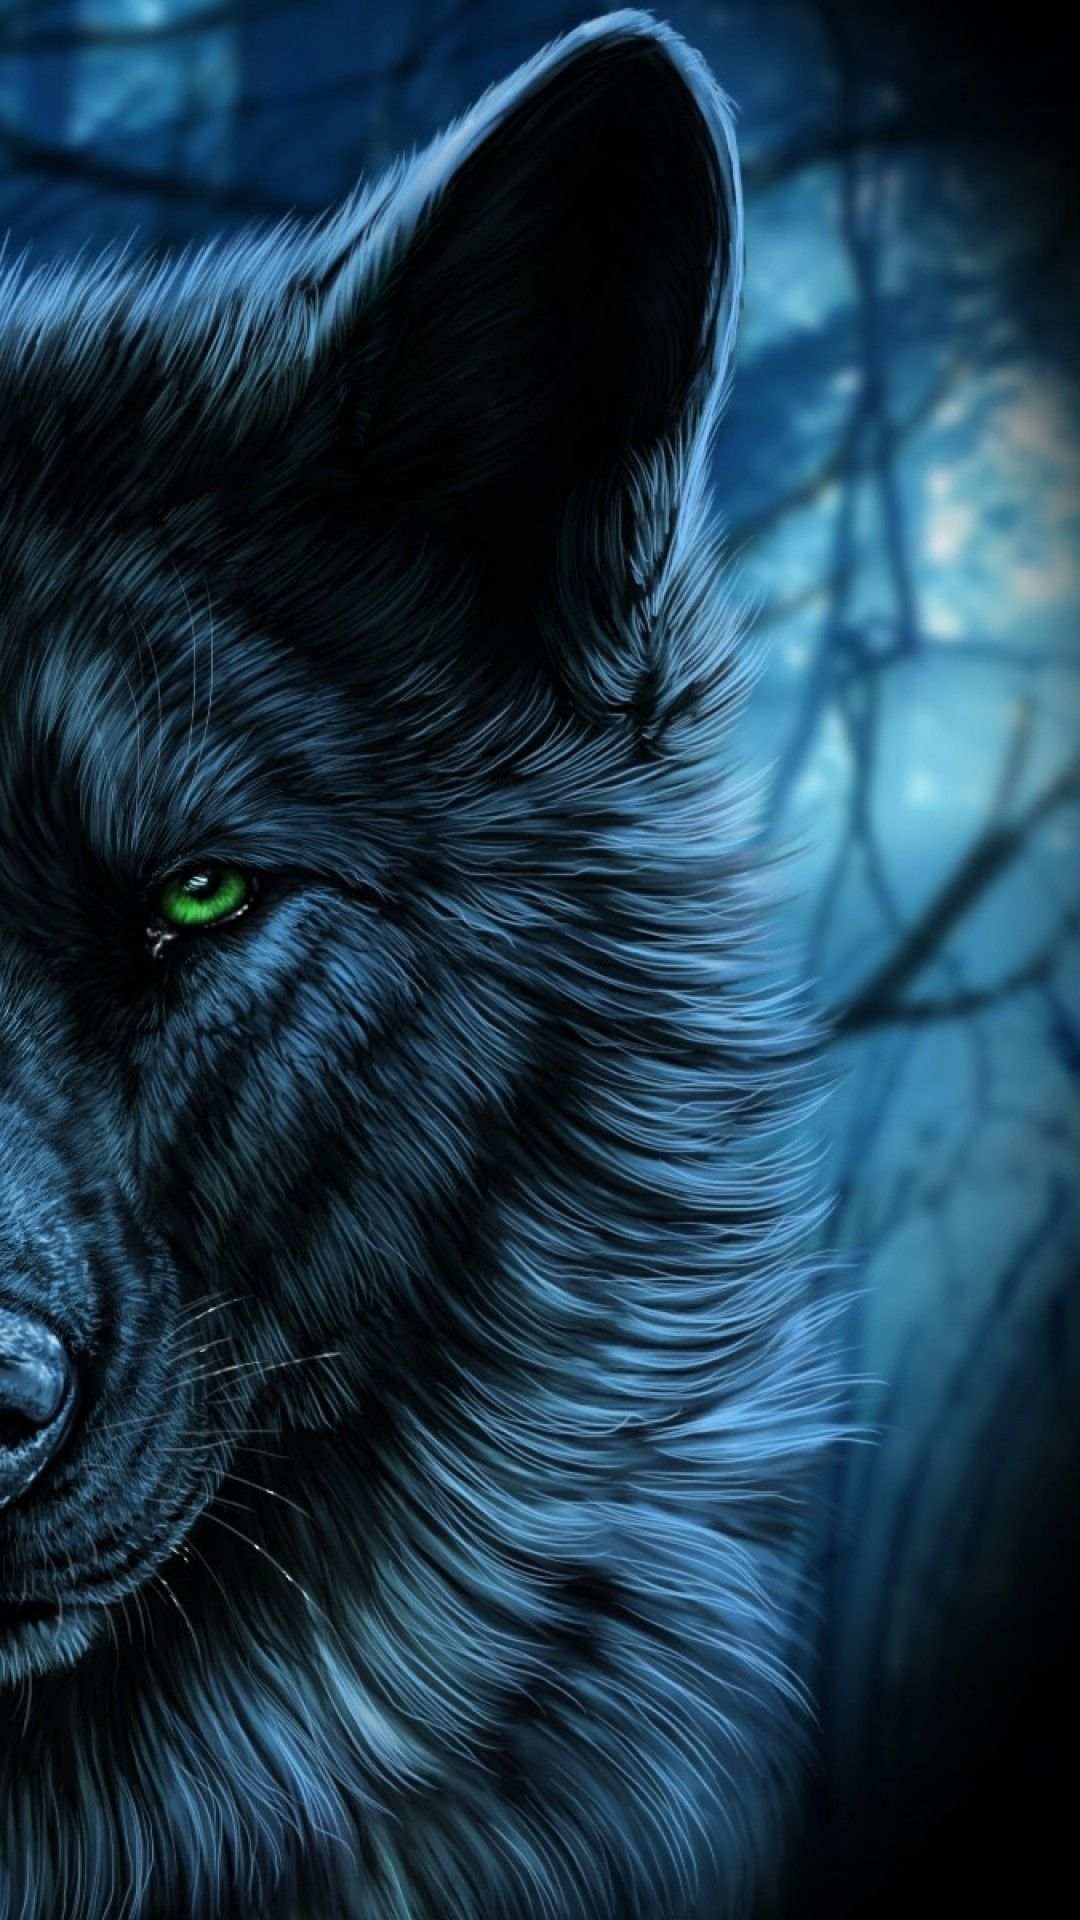 Wolf Wallpaper Android Download wolf Iphone en 2020